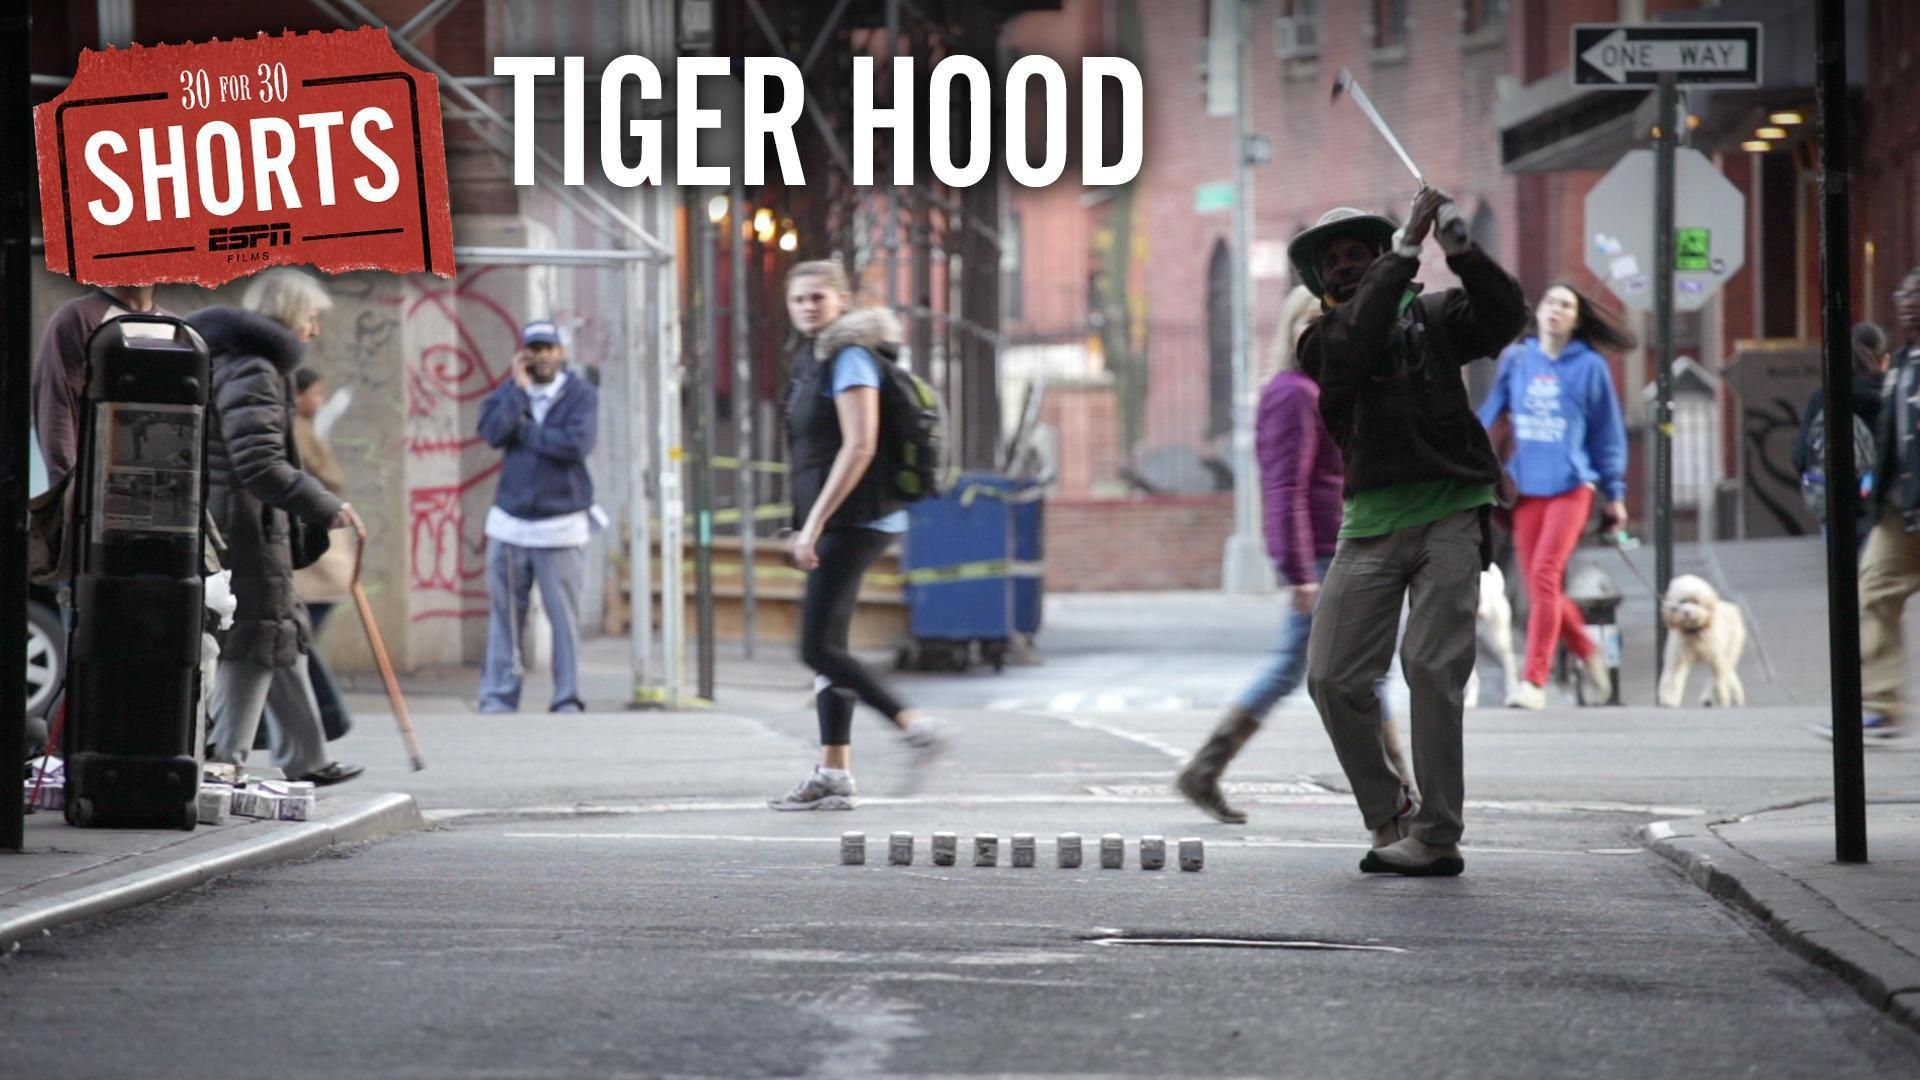 30 for 30 Shorts: Tiger Hood